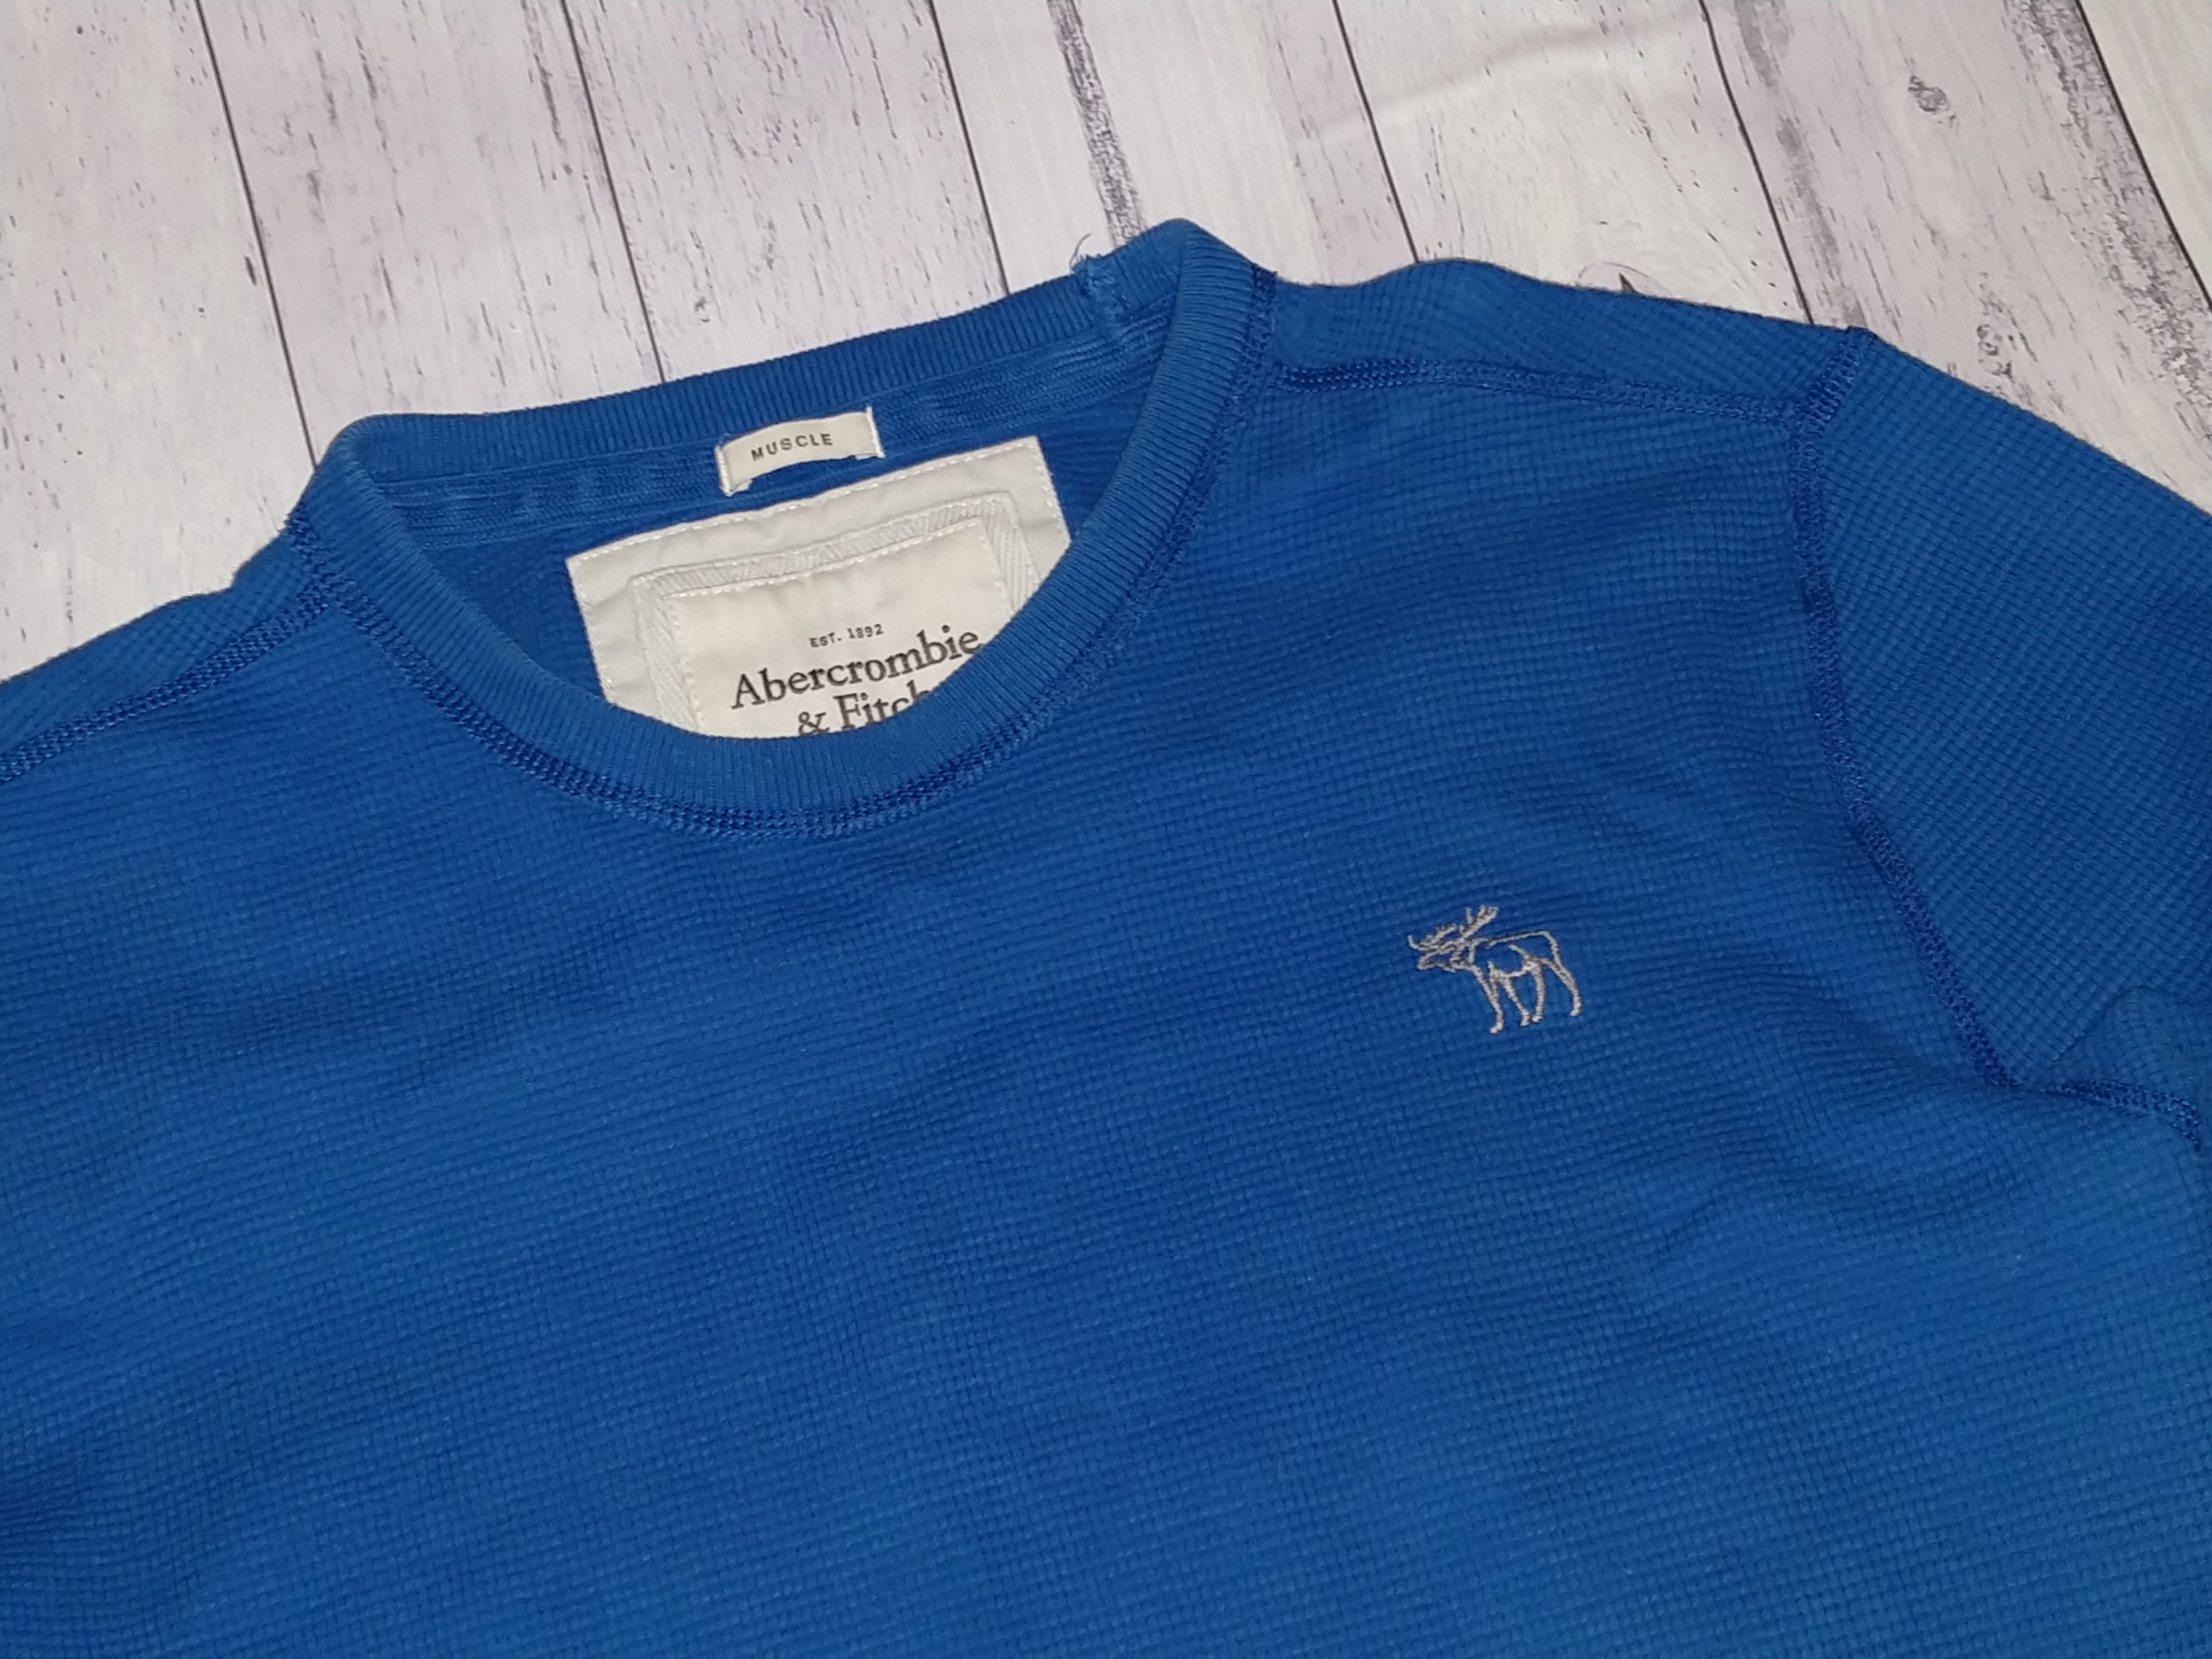 LONGSLEEVE ABERCROMBIE&FITCH ROZ M